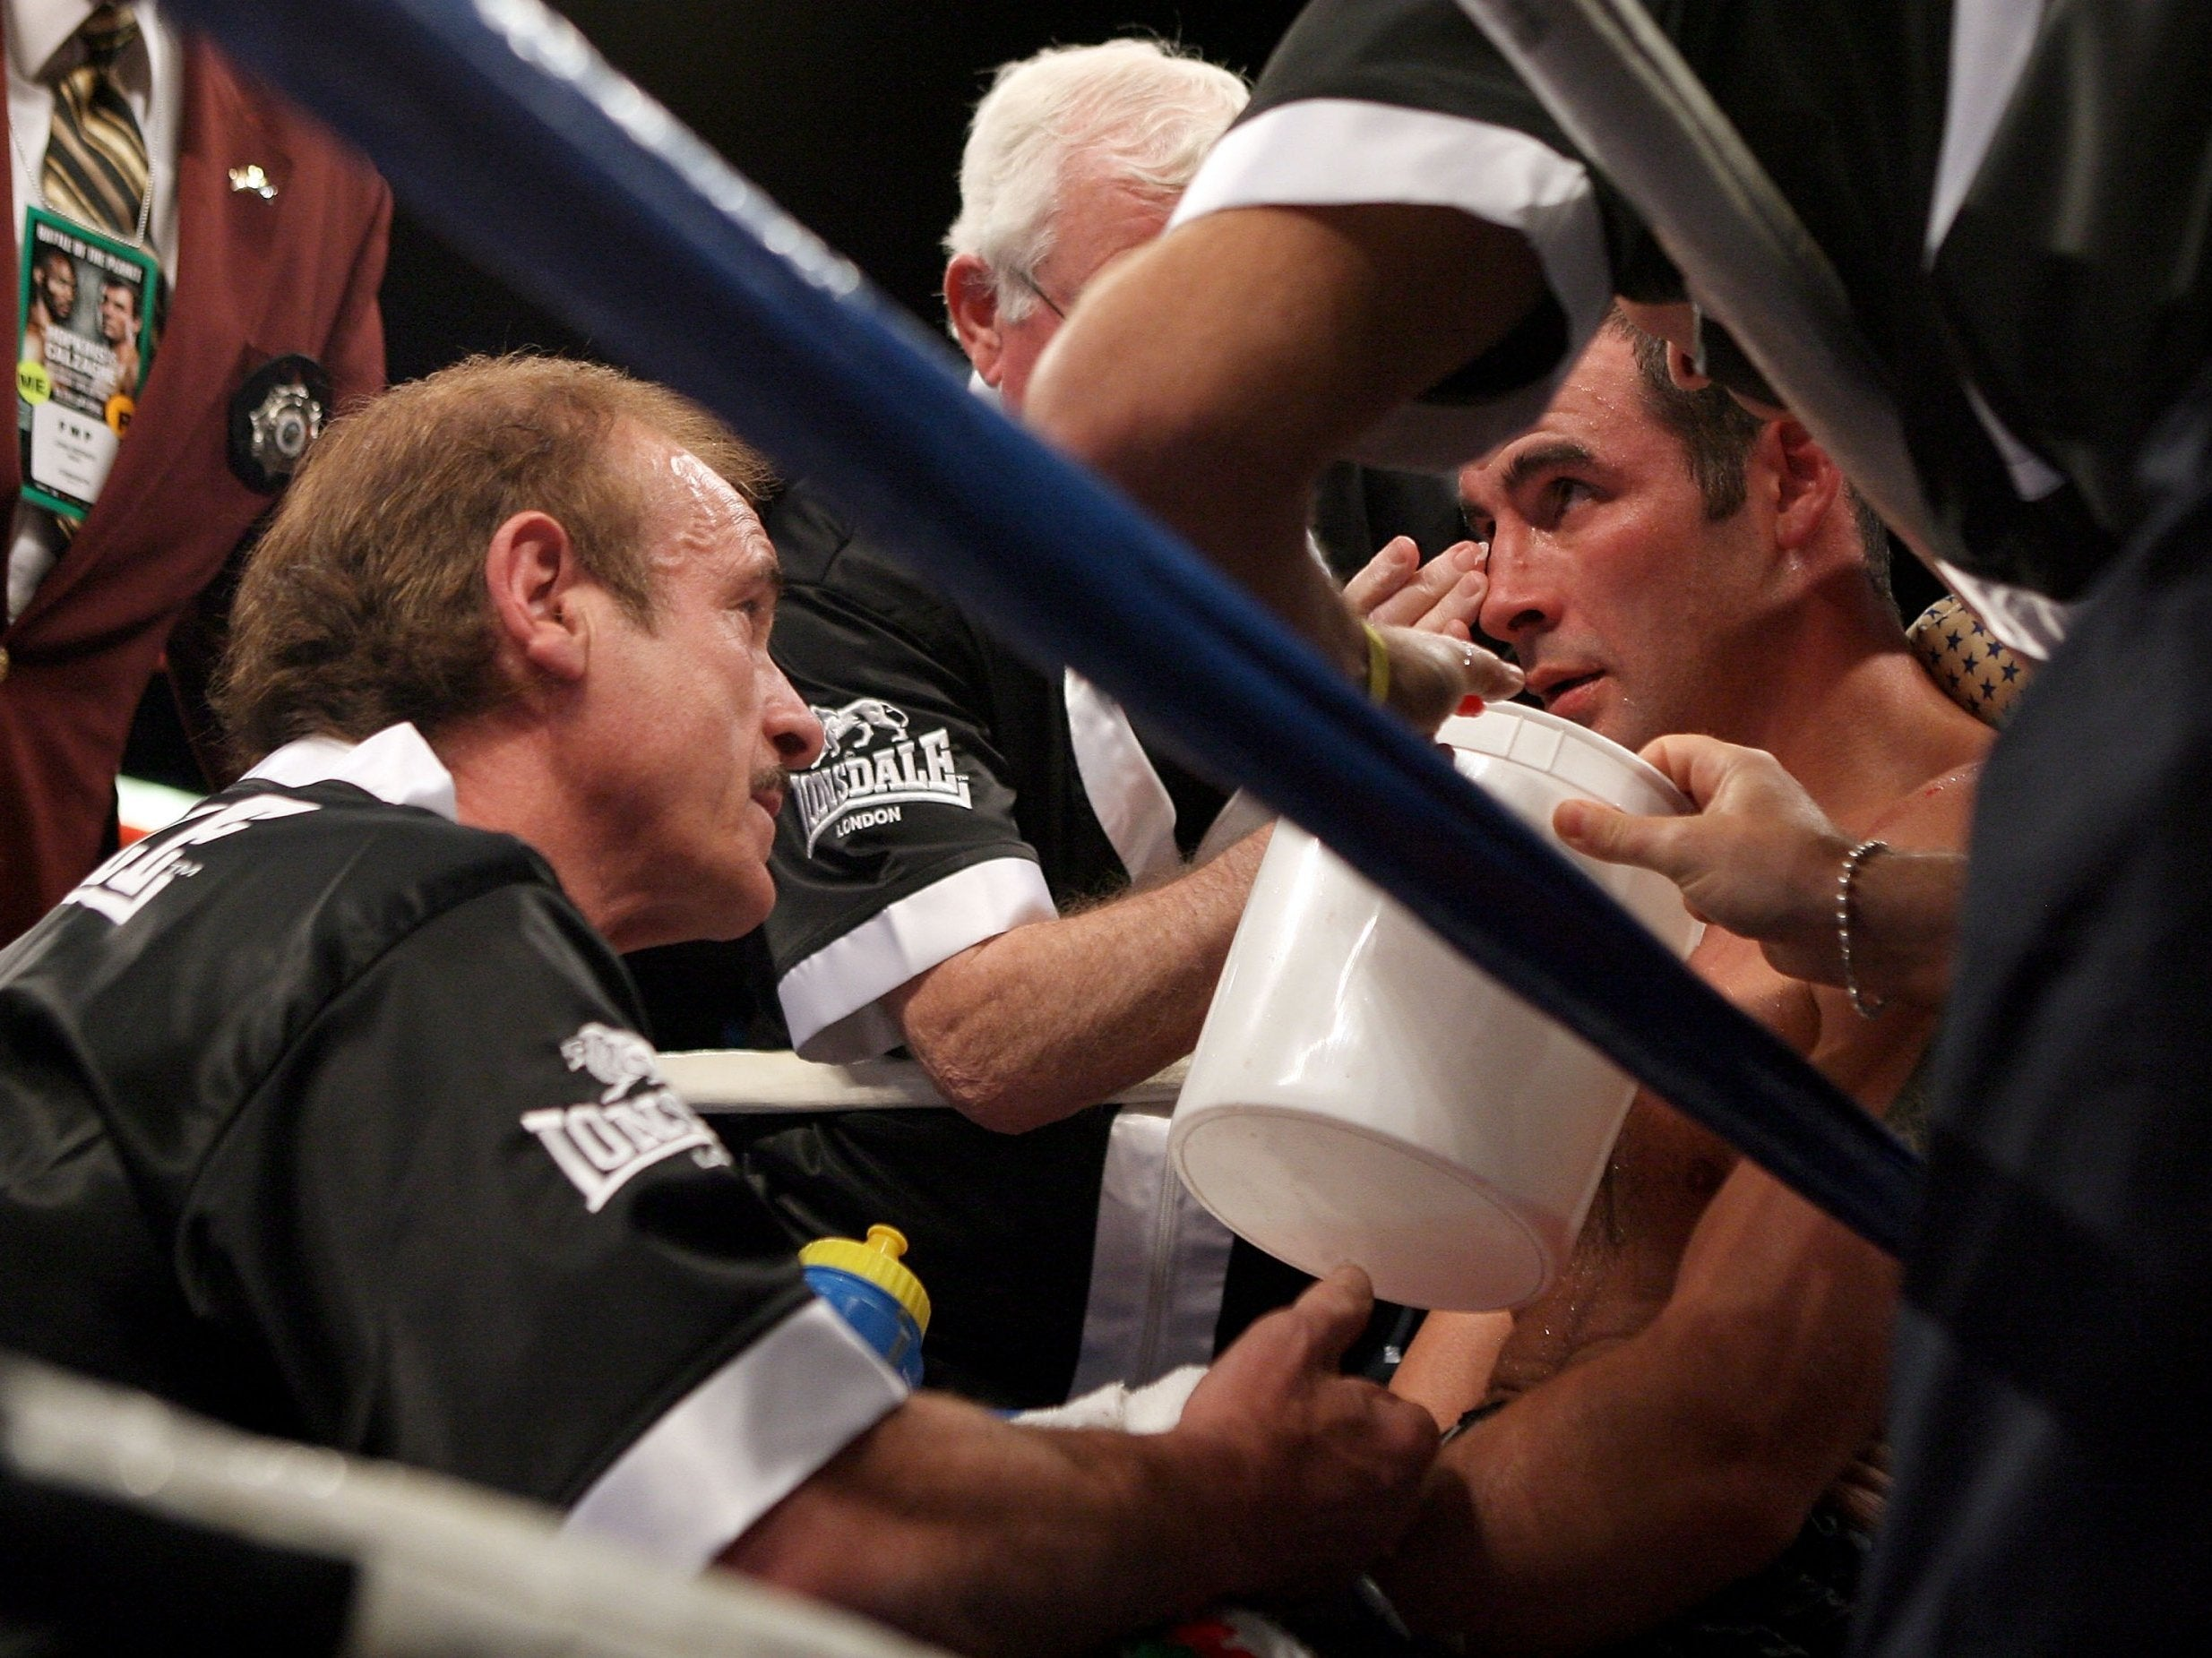 Enzo Calzaghe: Trainer who guided his son Joe to boxing greatness